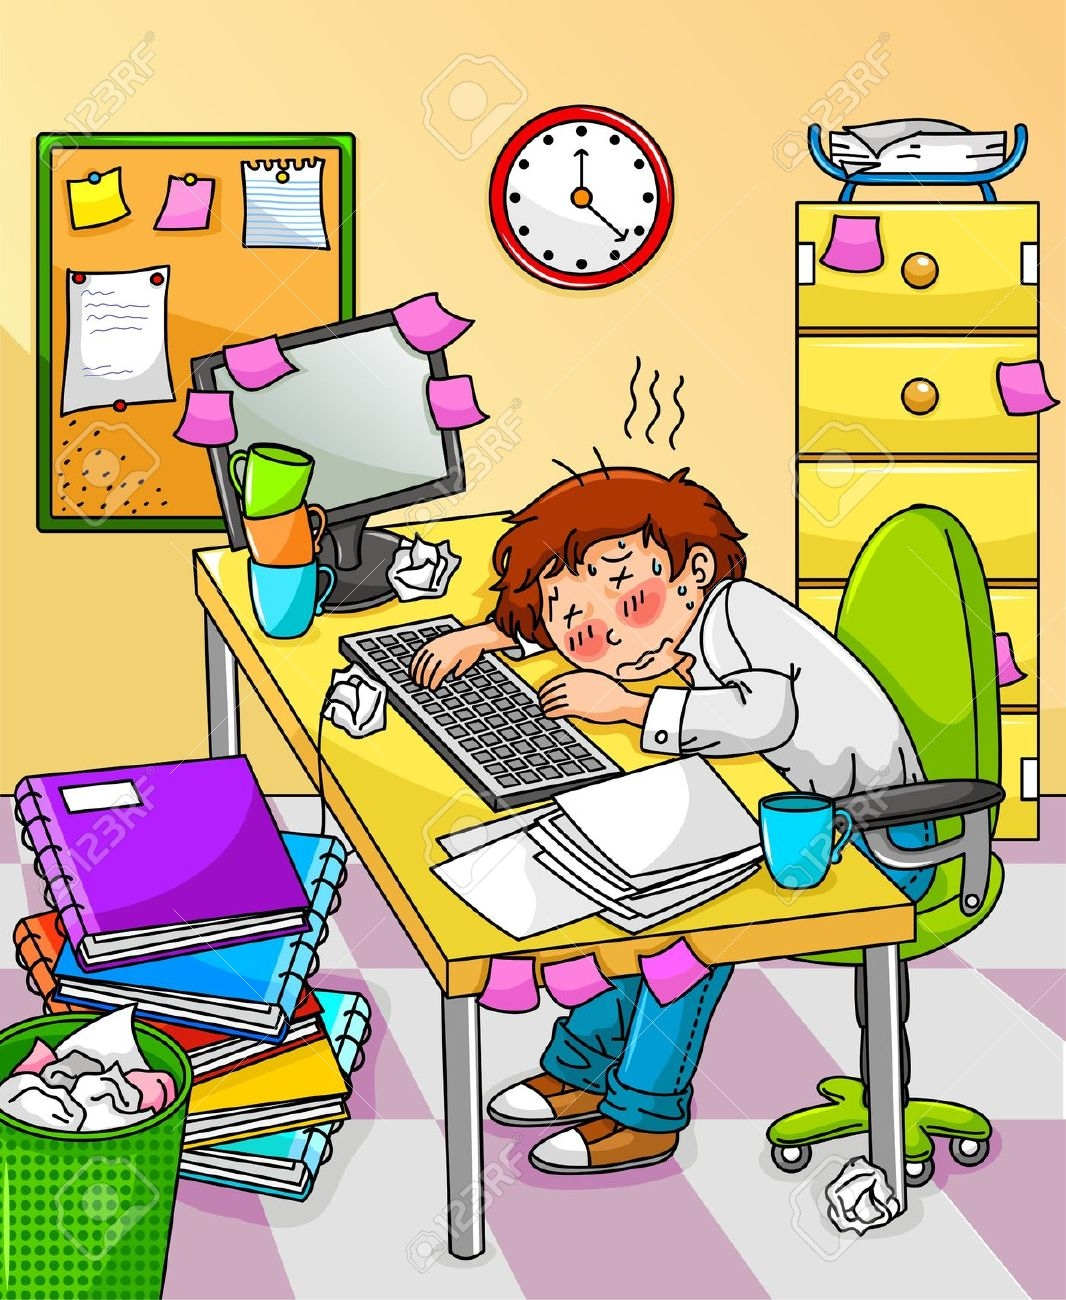 Stressed clip art library. Stress clipart stress student